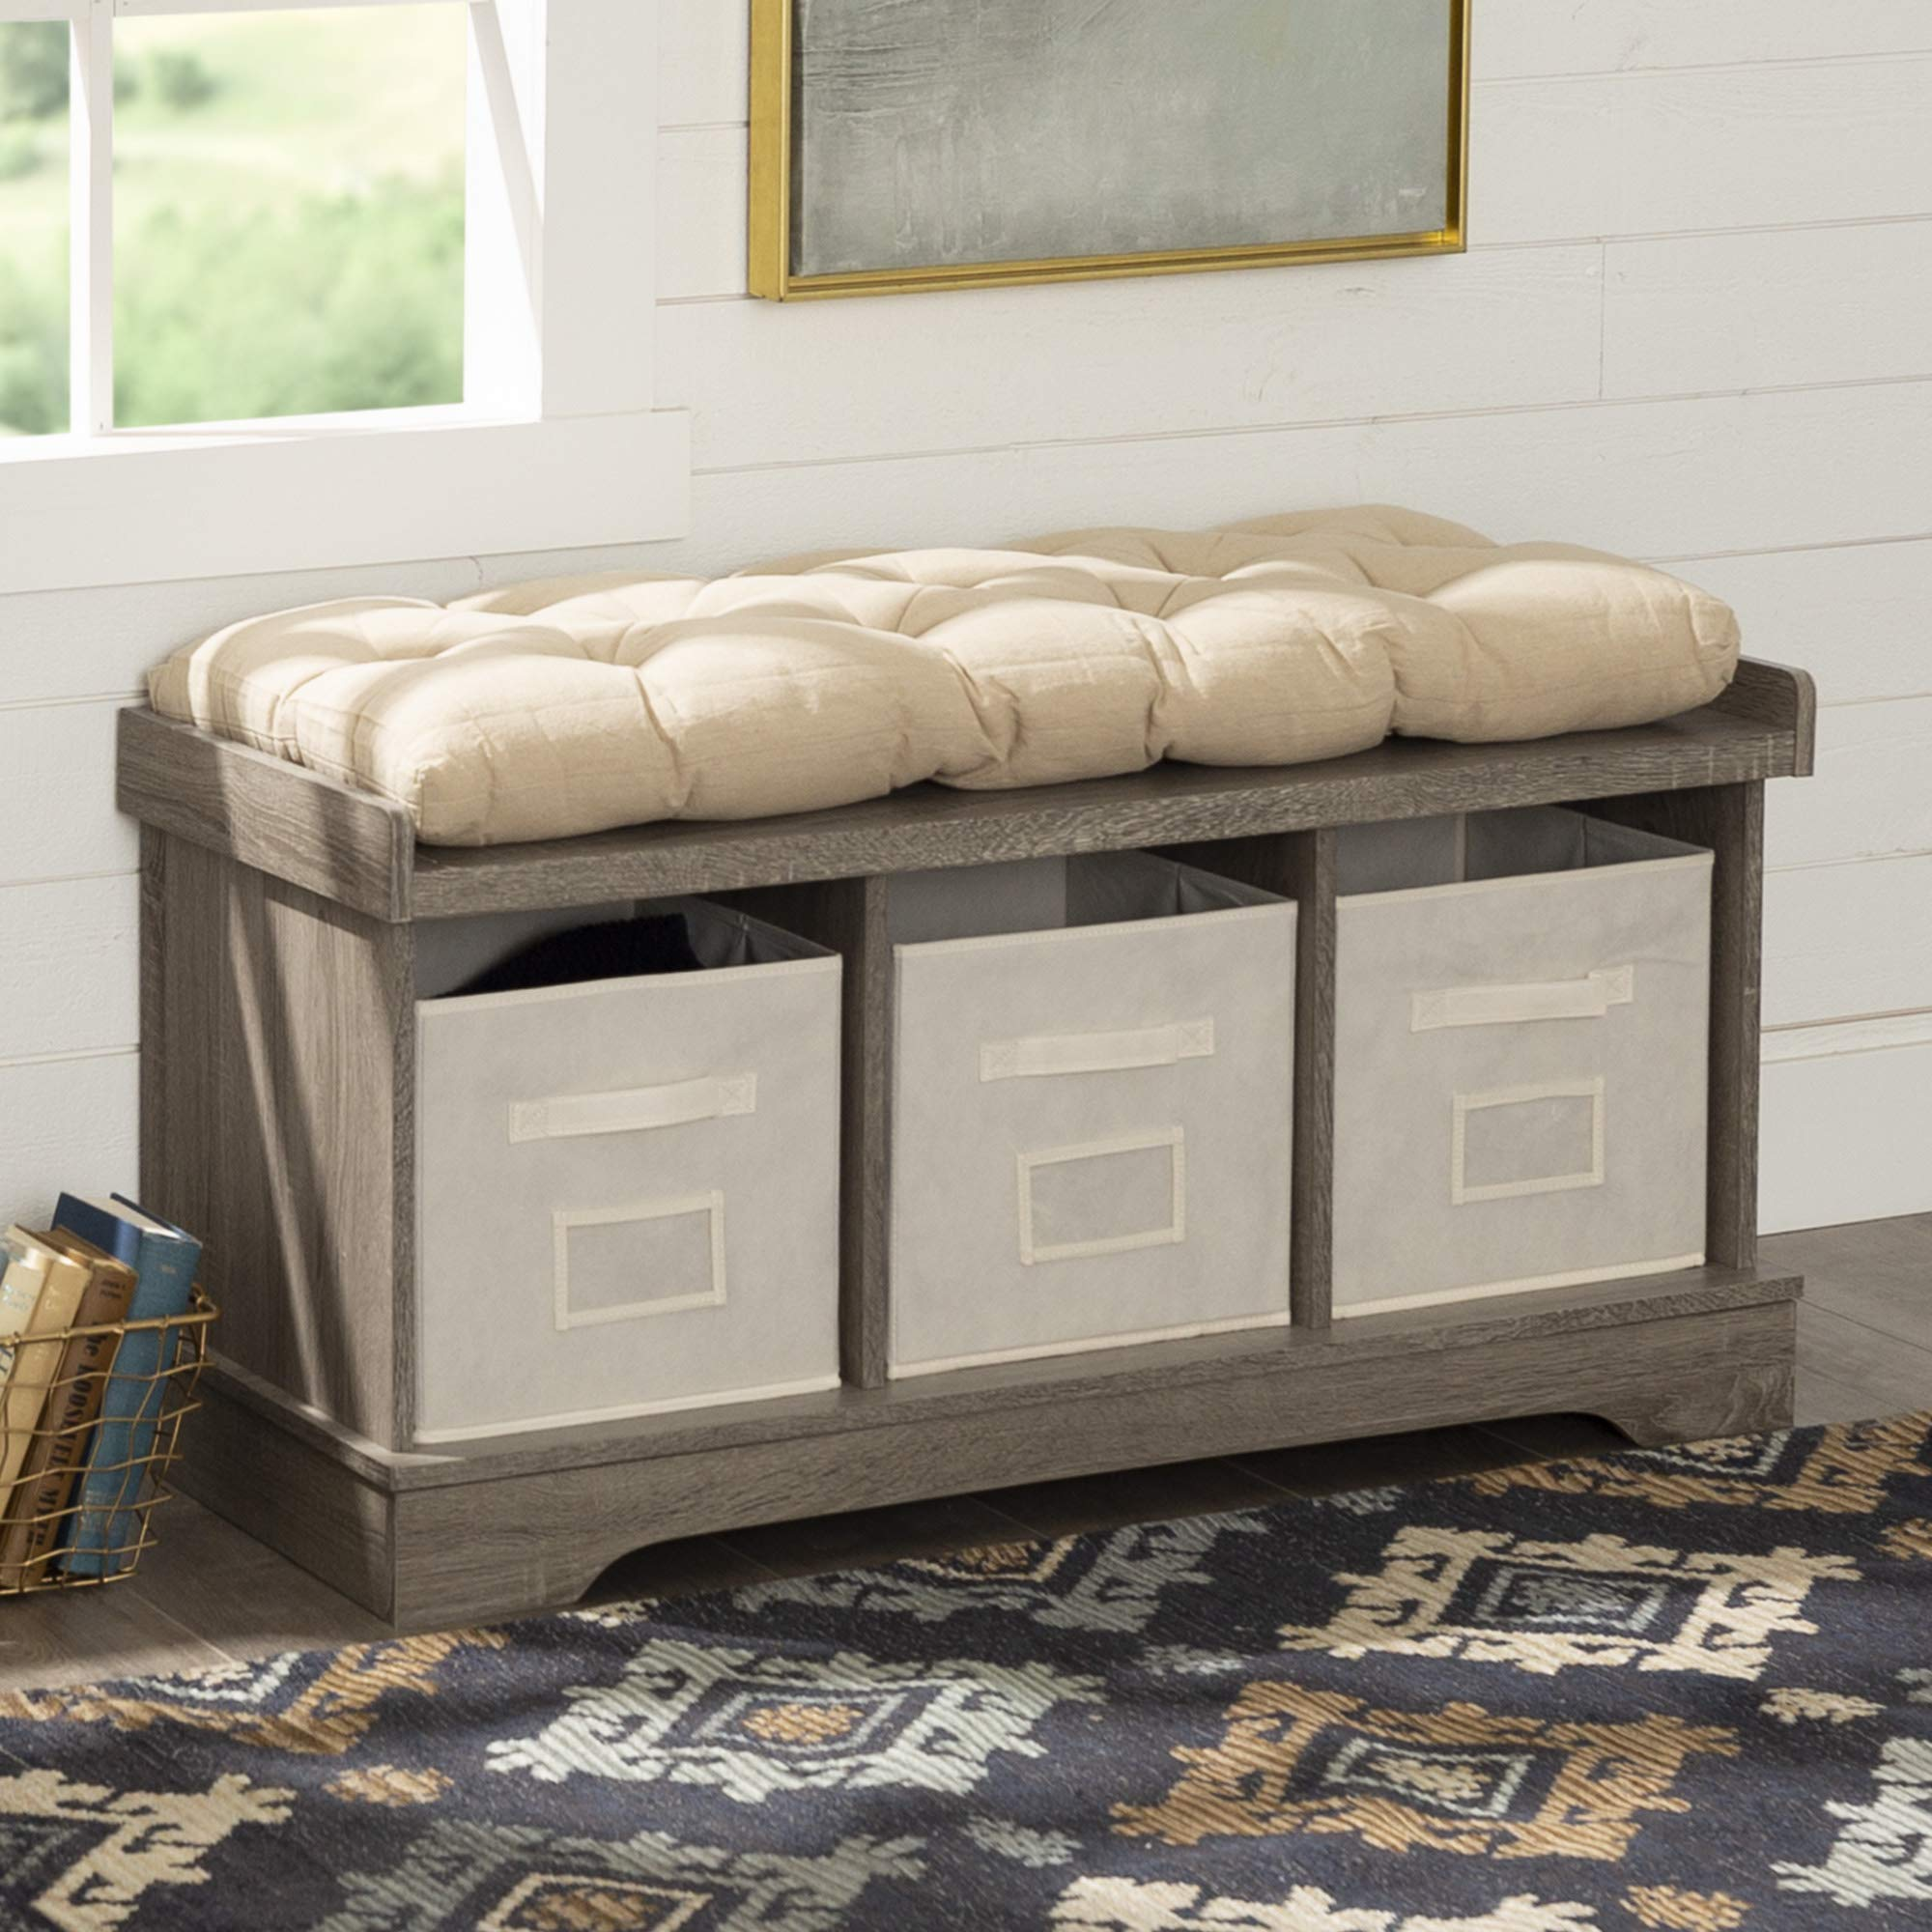 WE Furniture AZ42STCAG Storage Bench, Driftwood by WE Furniture